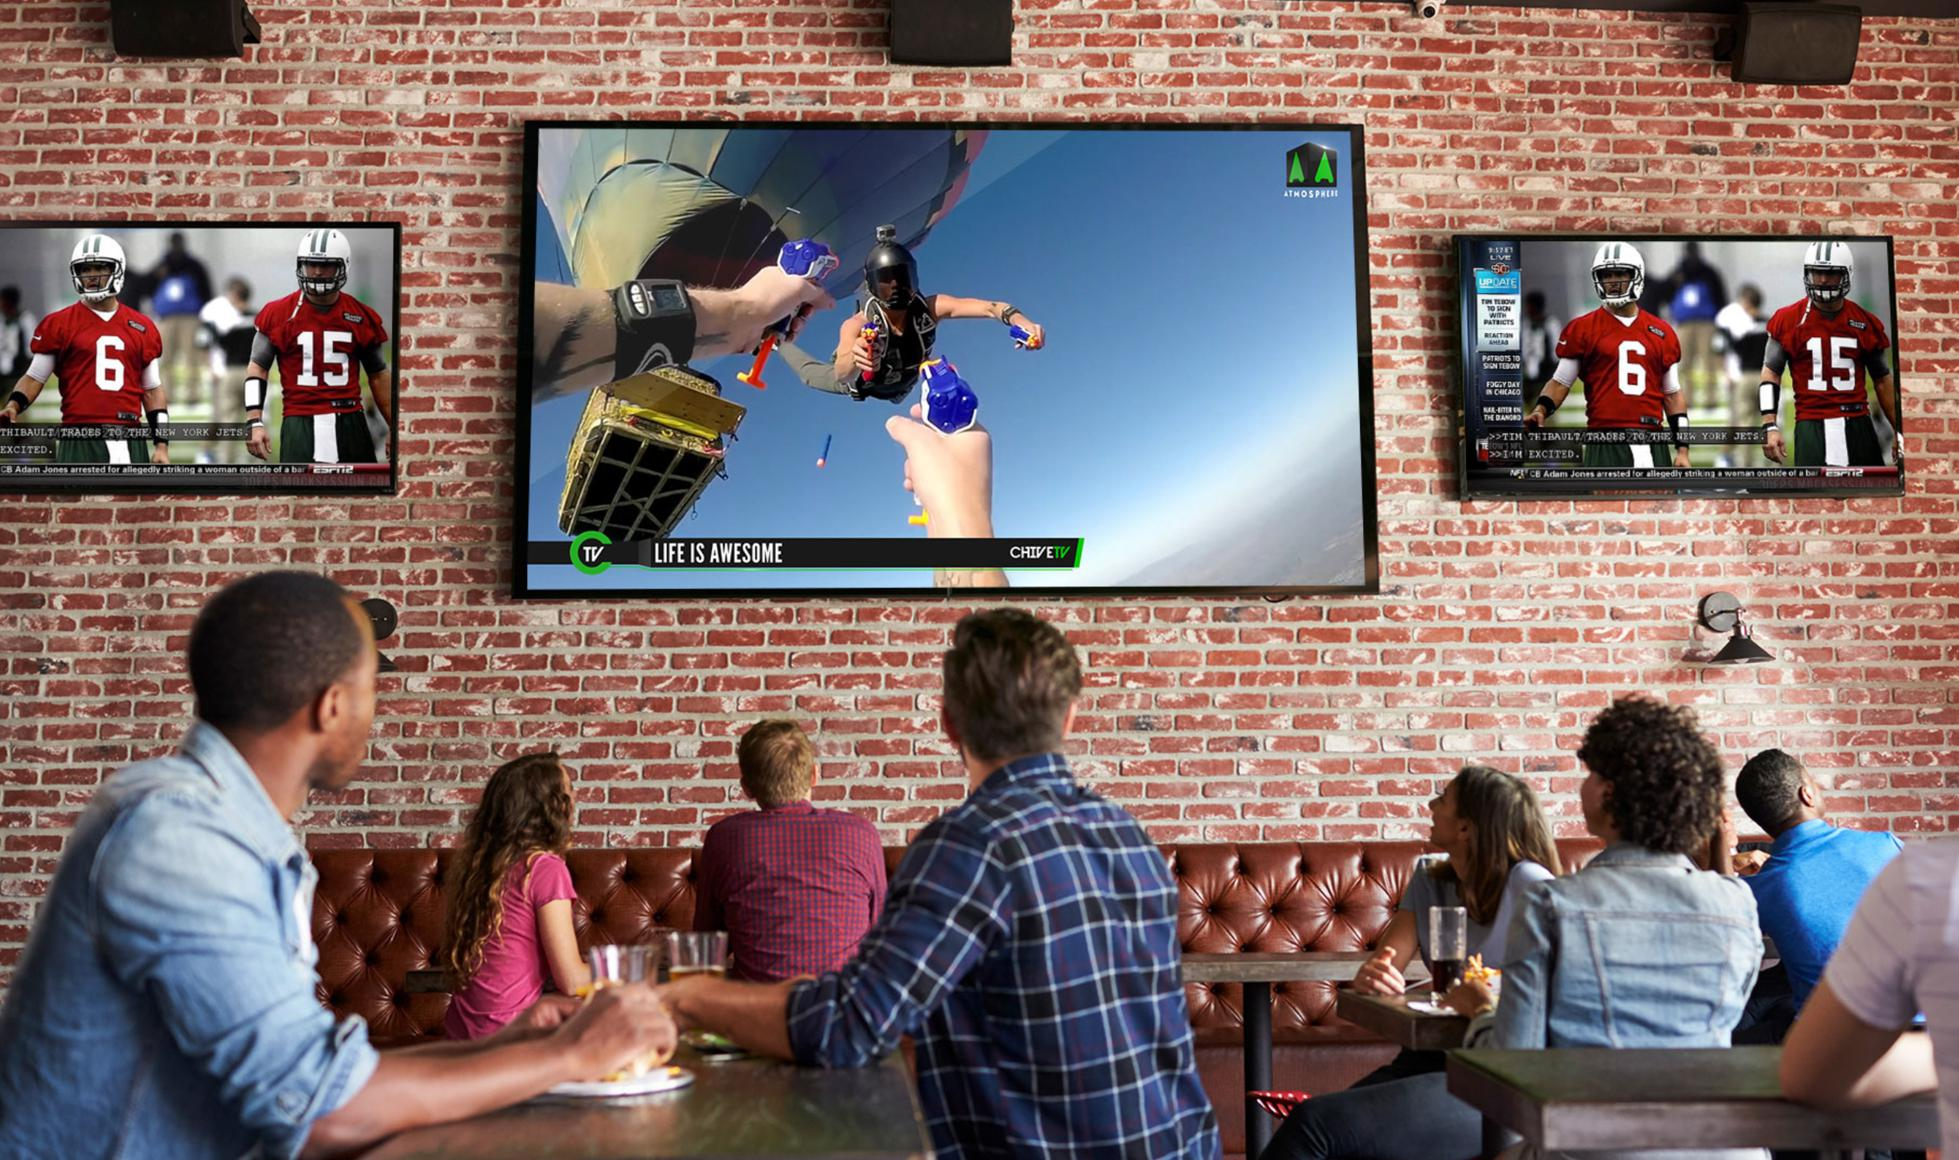 Atmosphere's TVs are now in 13,000 venues including bars and restaurants.